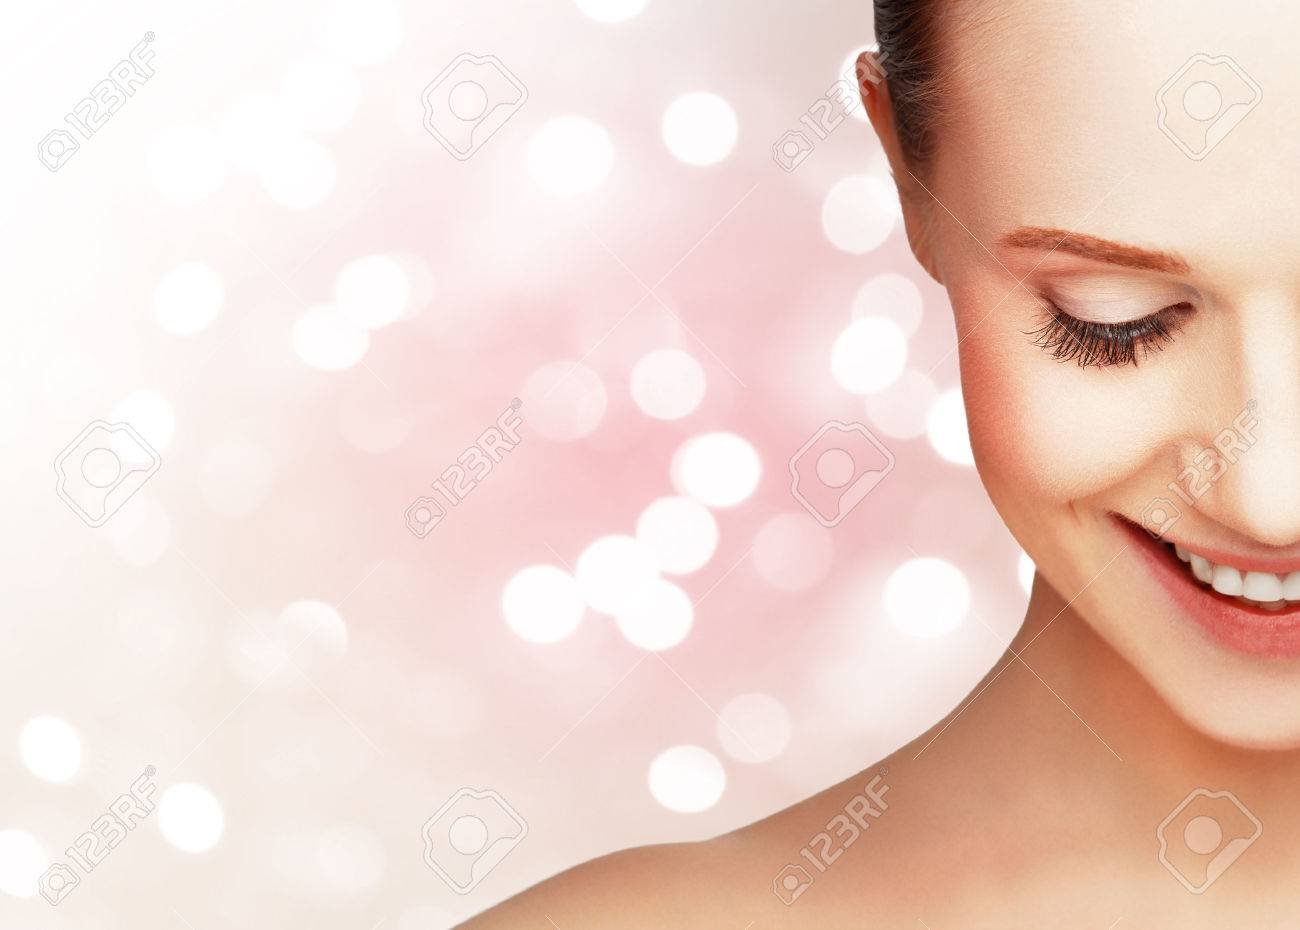 half laughing face of a beautiful healthy woman - 53678461